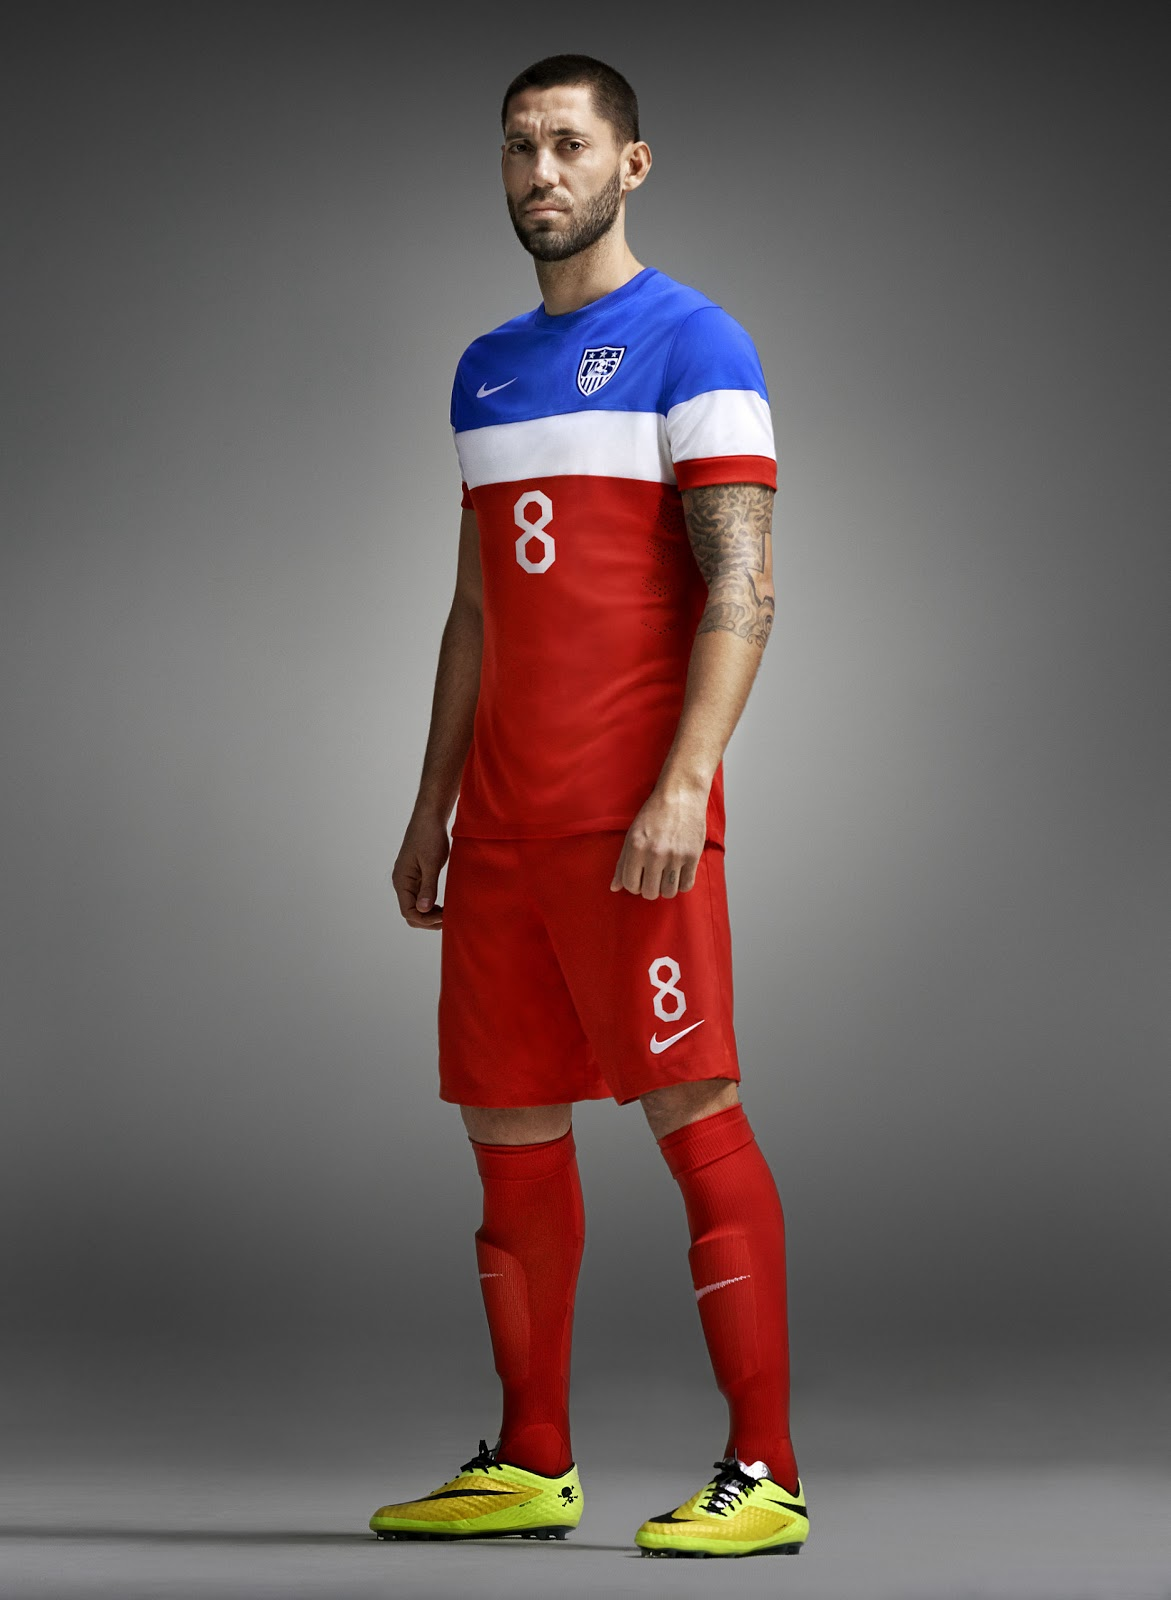 newest 6a27f 84b04 U.S. Soccer needs an identity, and the Waldo jersey is the ...